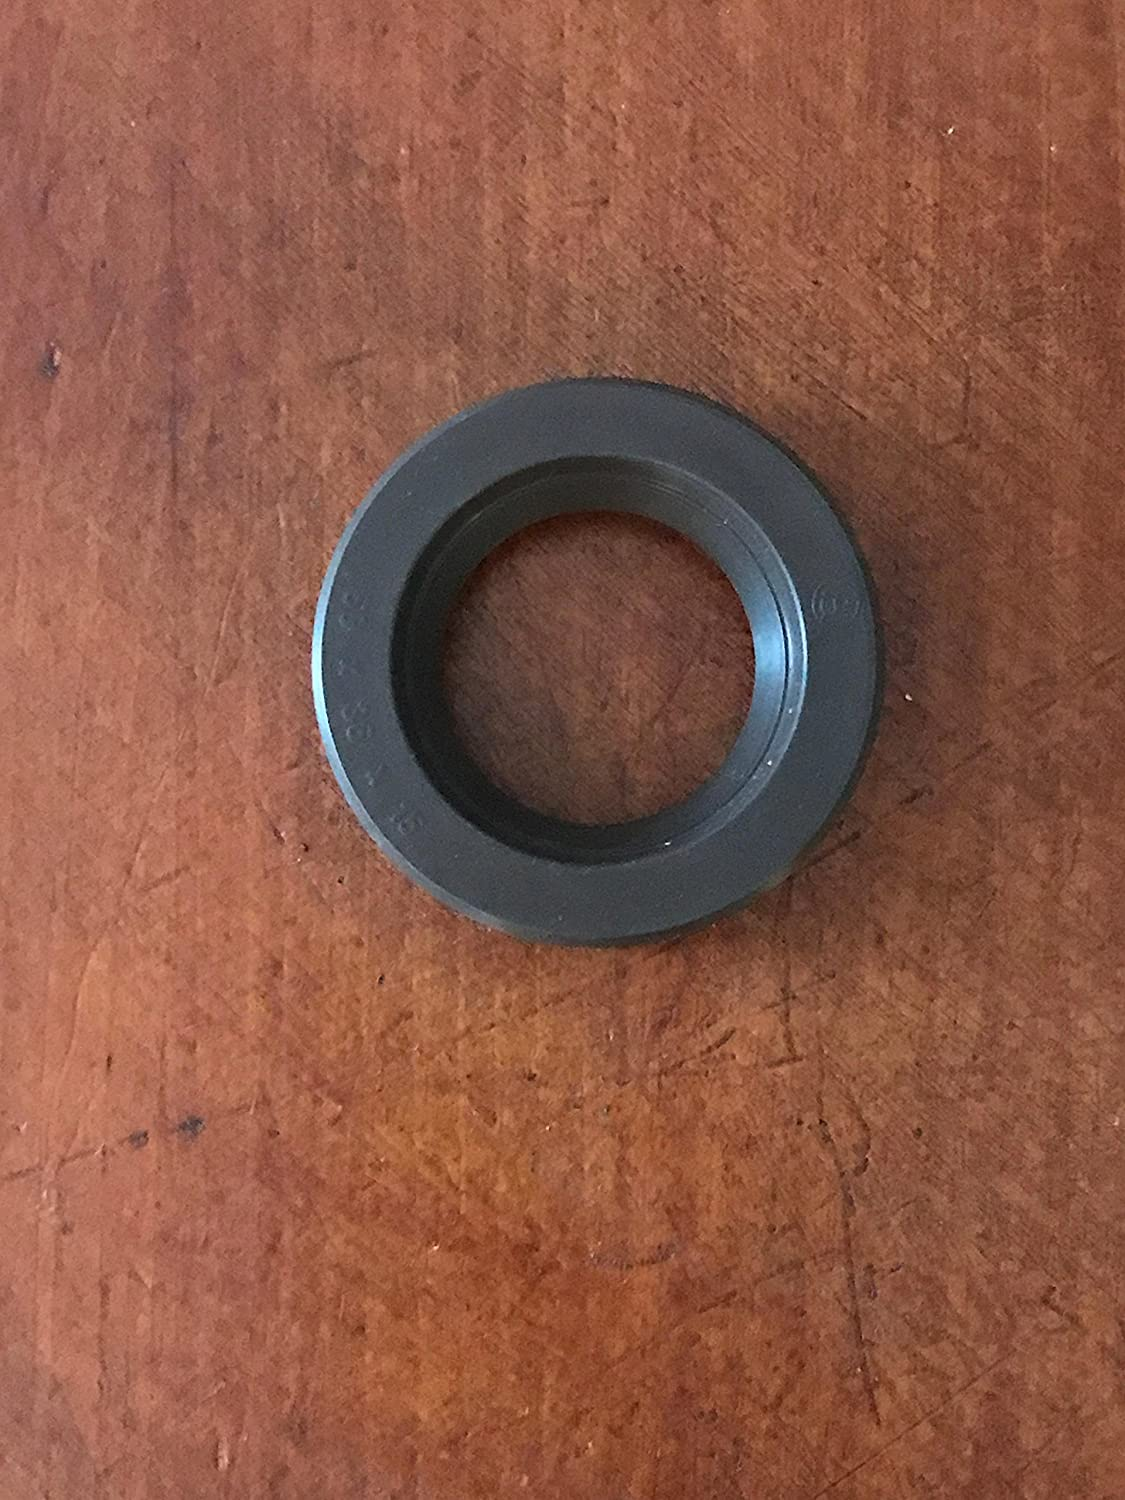 Seal ring #1003014 for Firbimatic, Union, Realstar dry cleaning machines